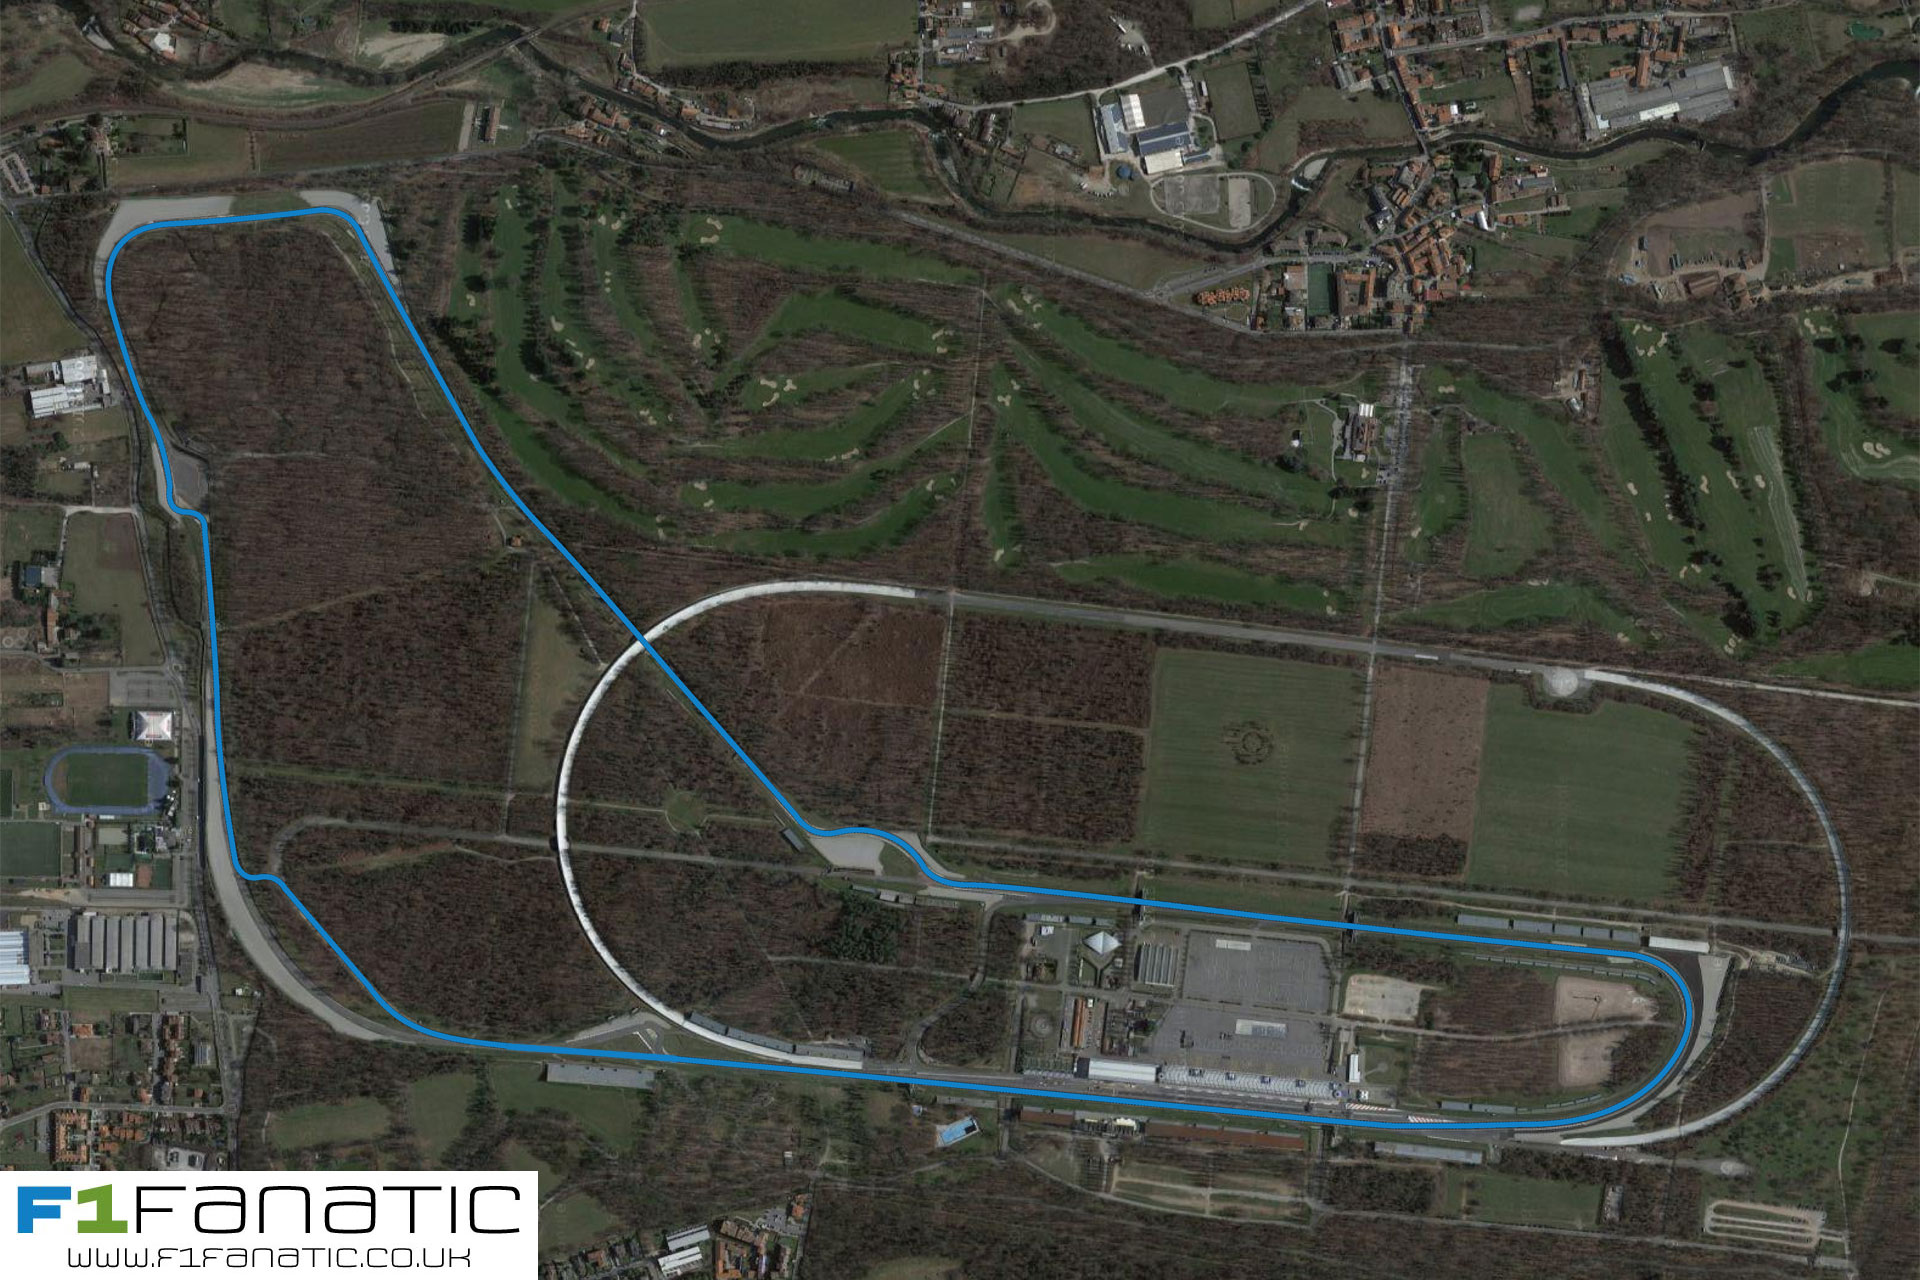 Monza track changes plan for 2017